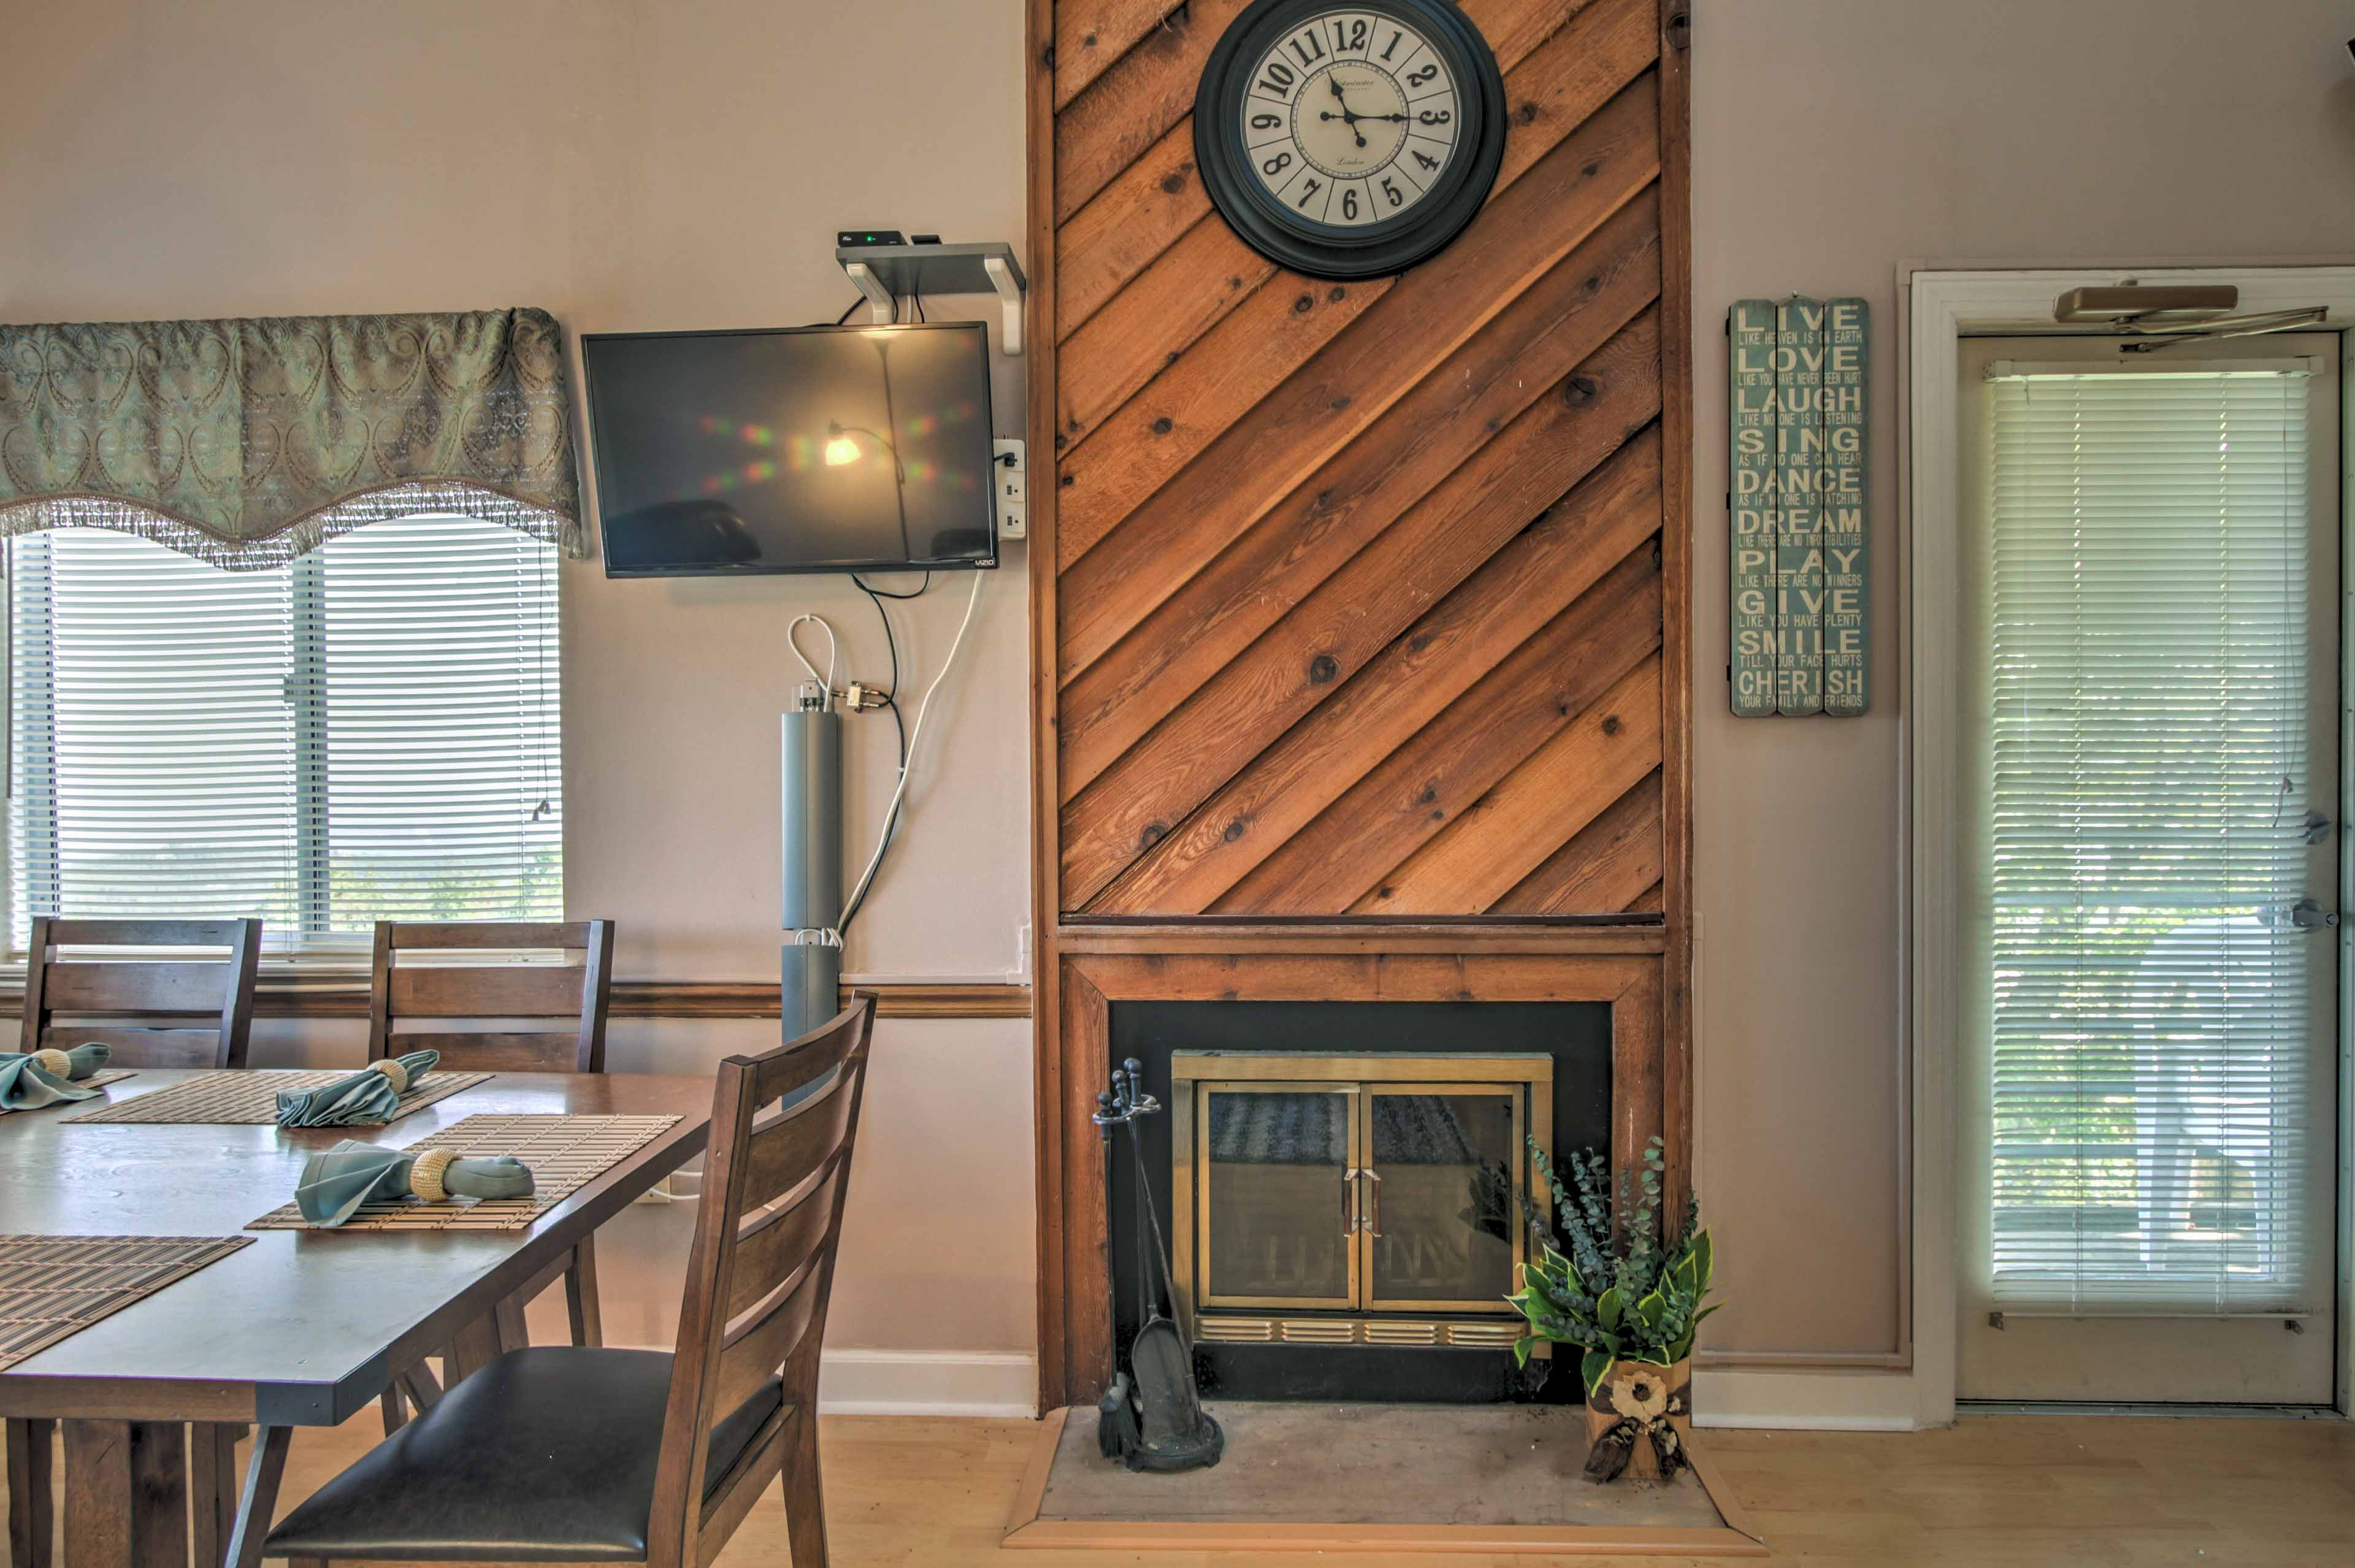 Watch a movie while cuddling close to the wood-burning fireplace.